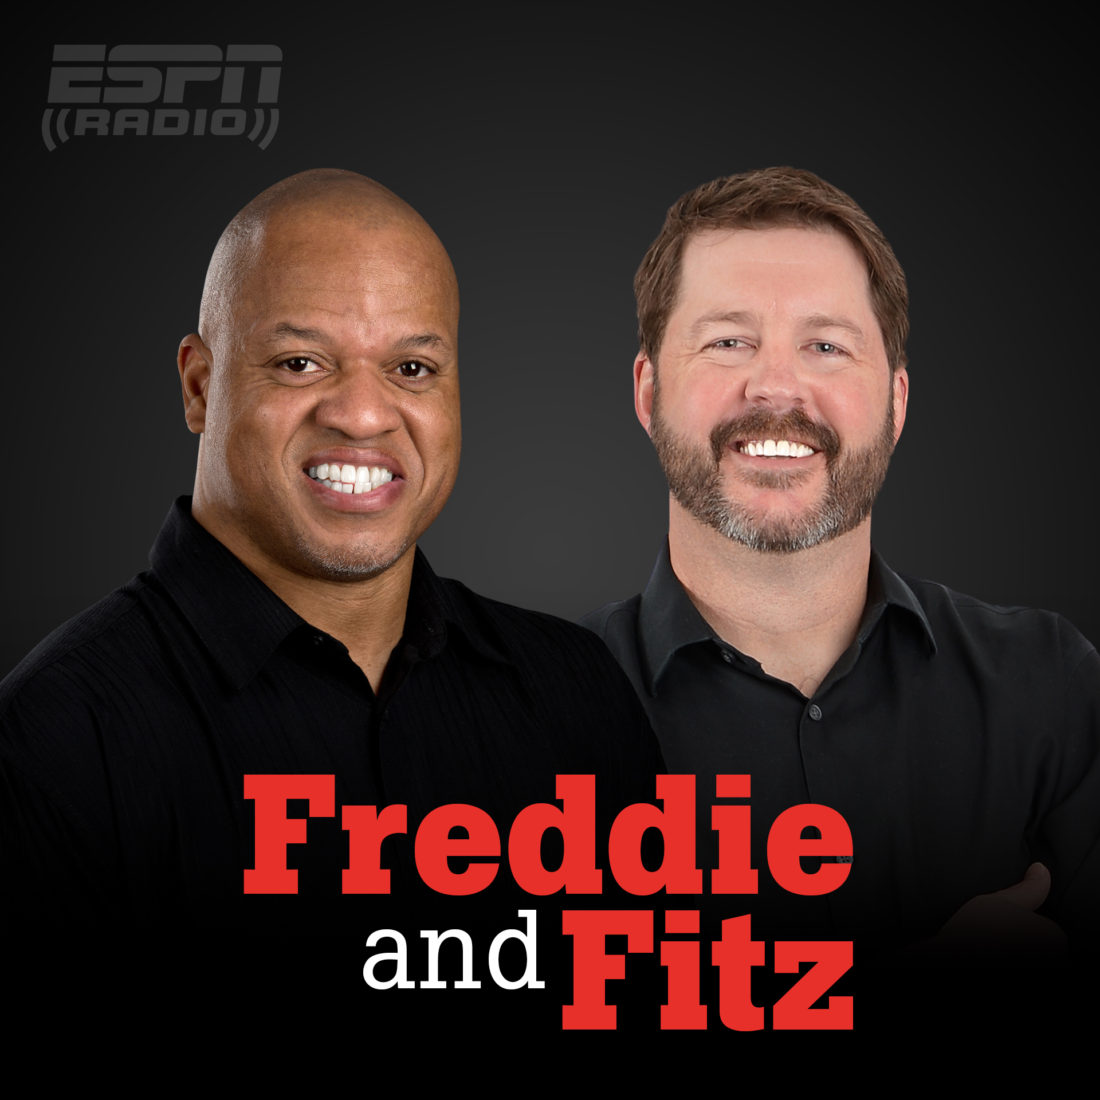 ESPN Radio's Freddie Coleman Talks the Change in ESPN's Content Over the Years, His Radio Voice from God and More